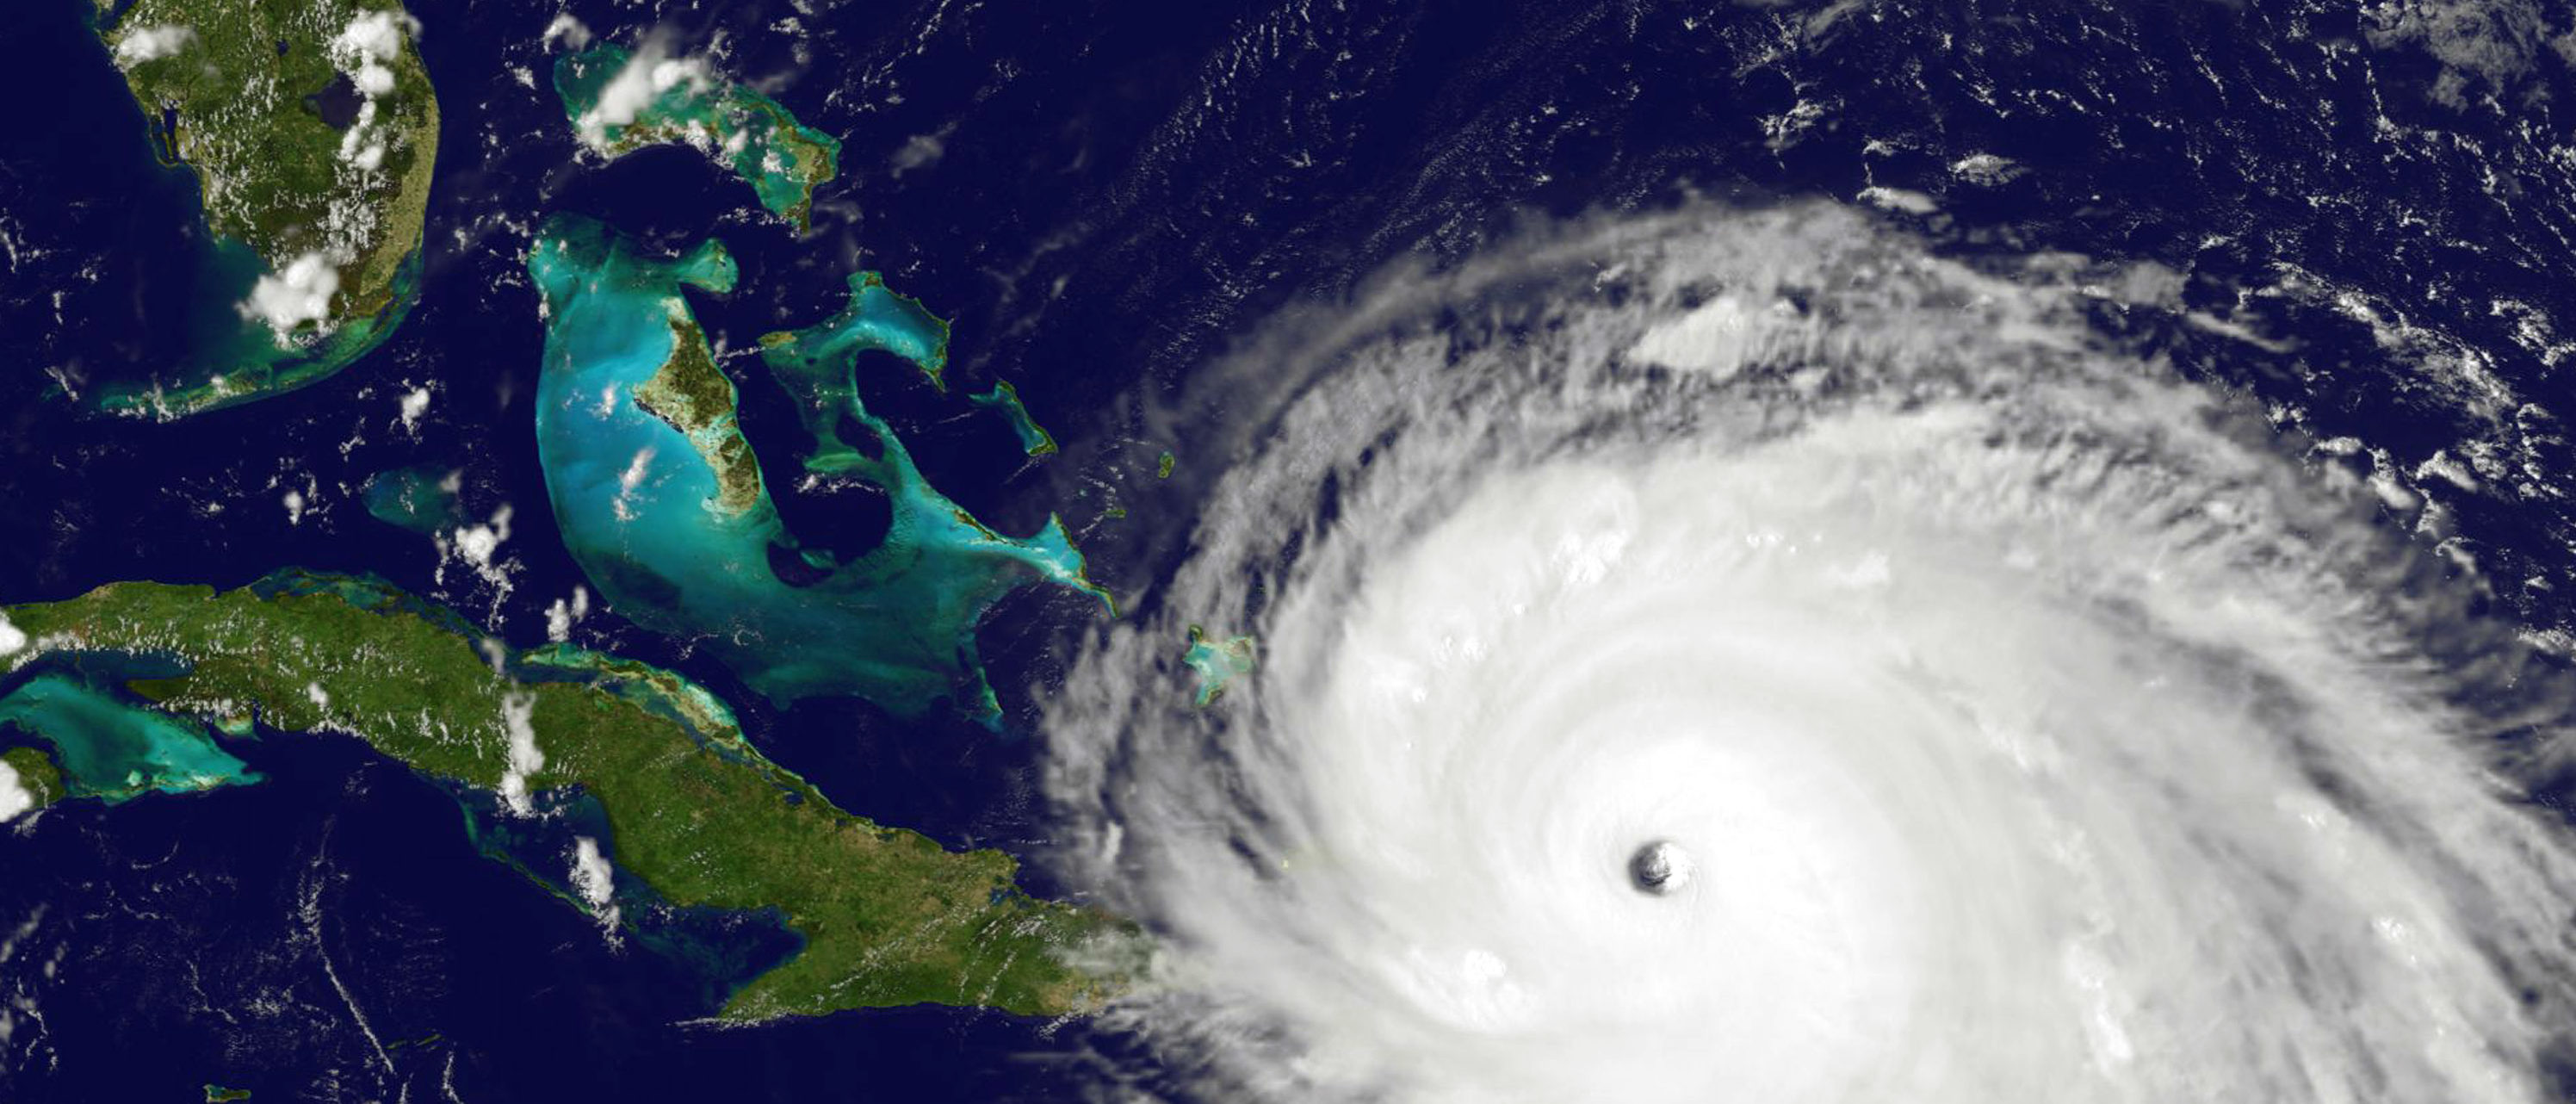 Nyt Admits Link Between Hurricanes And Climate Change